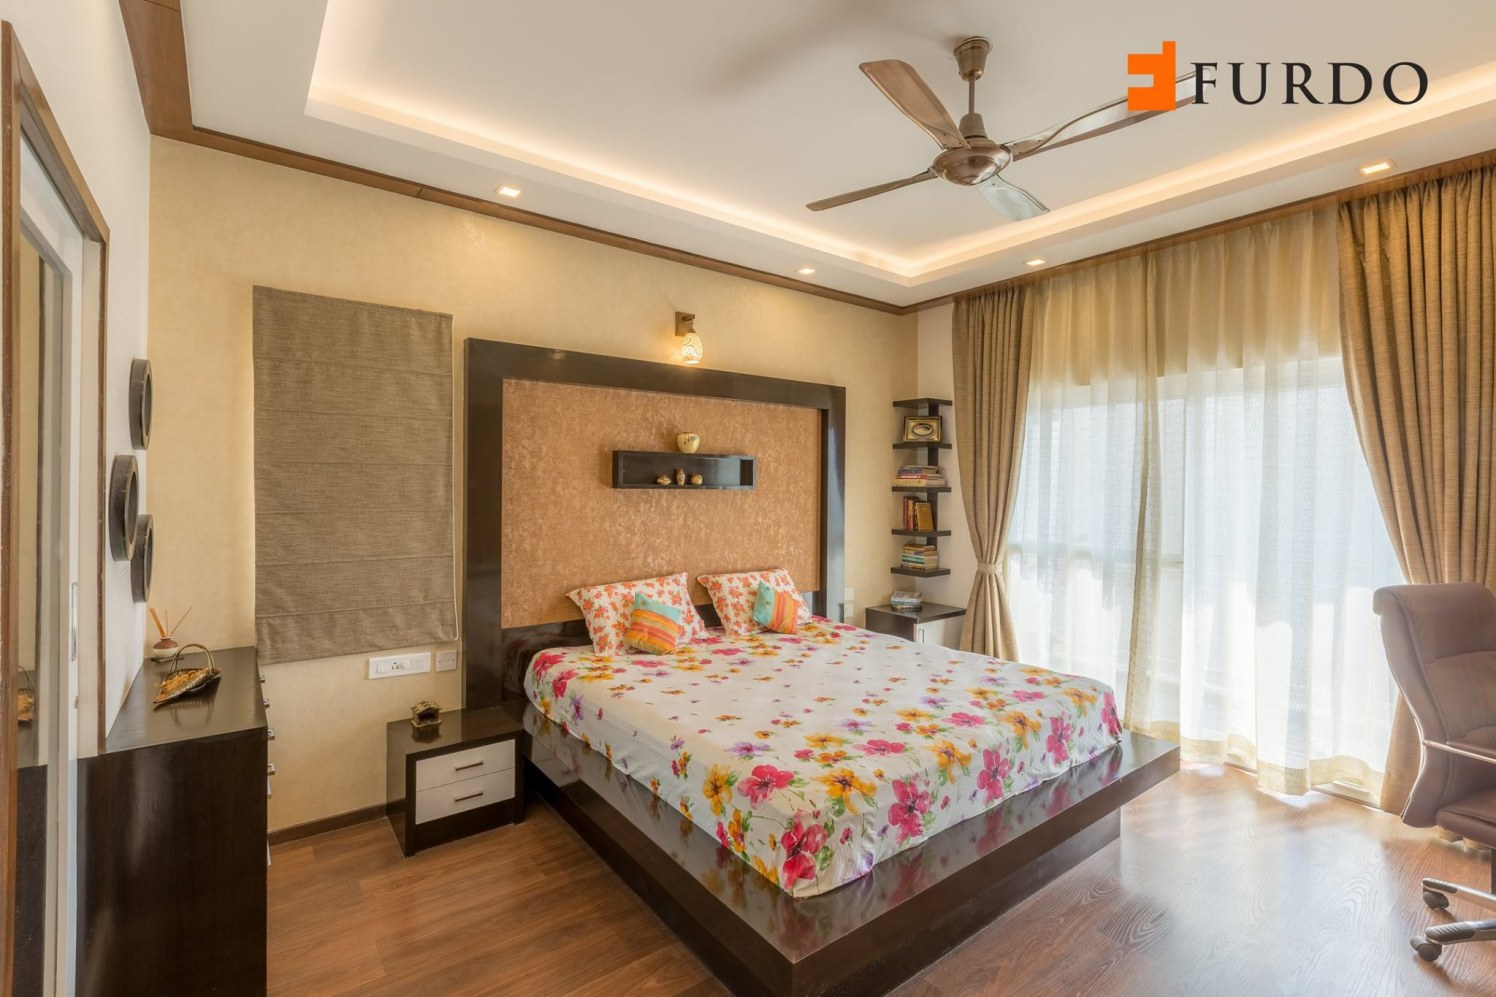 Bedroom With Wooden Flooring And False Ceiling by Furdo.com Bedroom Contemporary | Interior Design Photos & Ideas